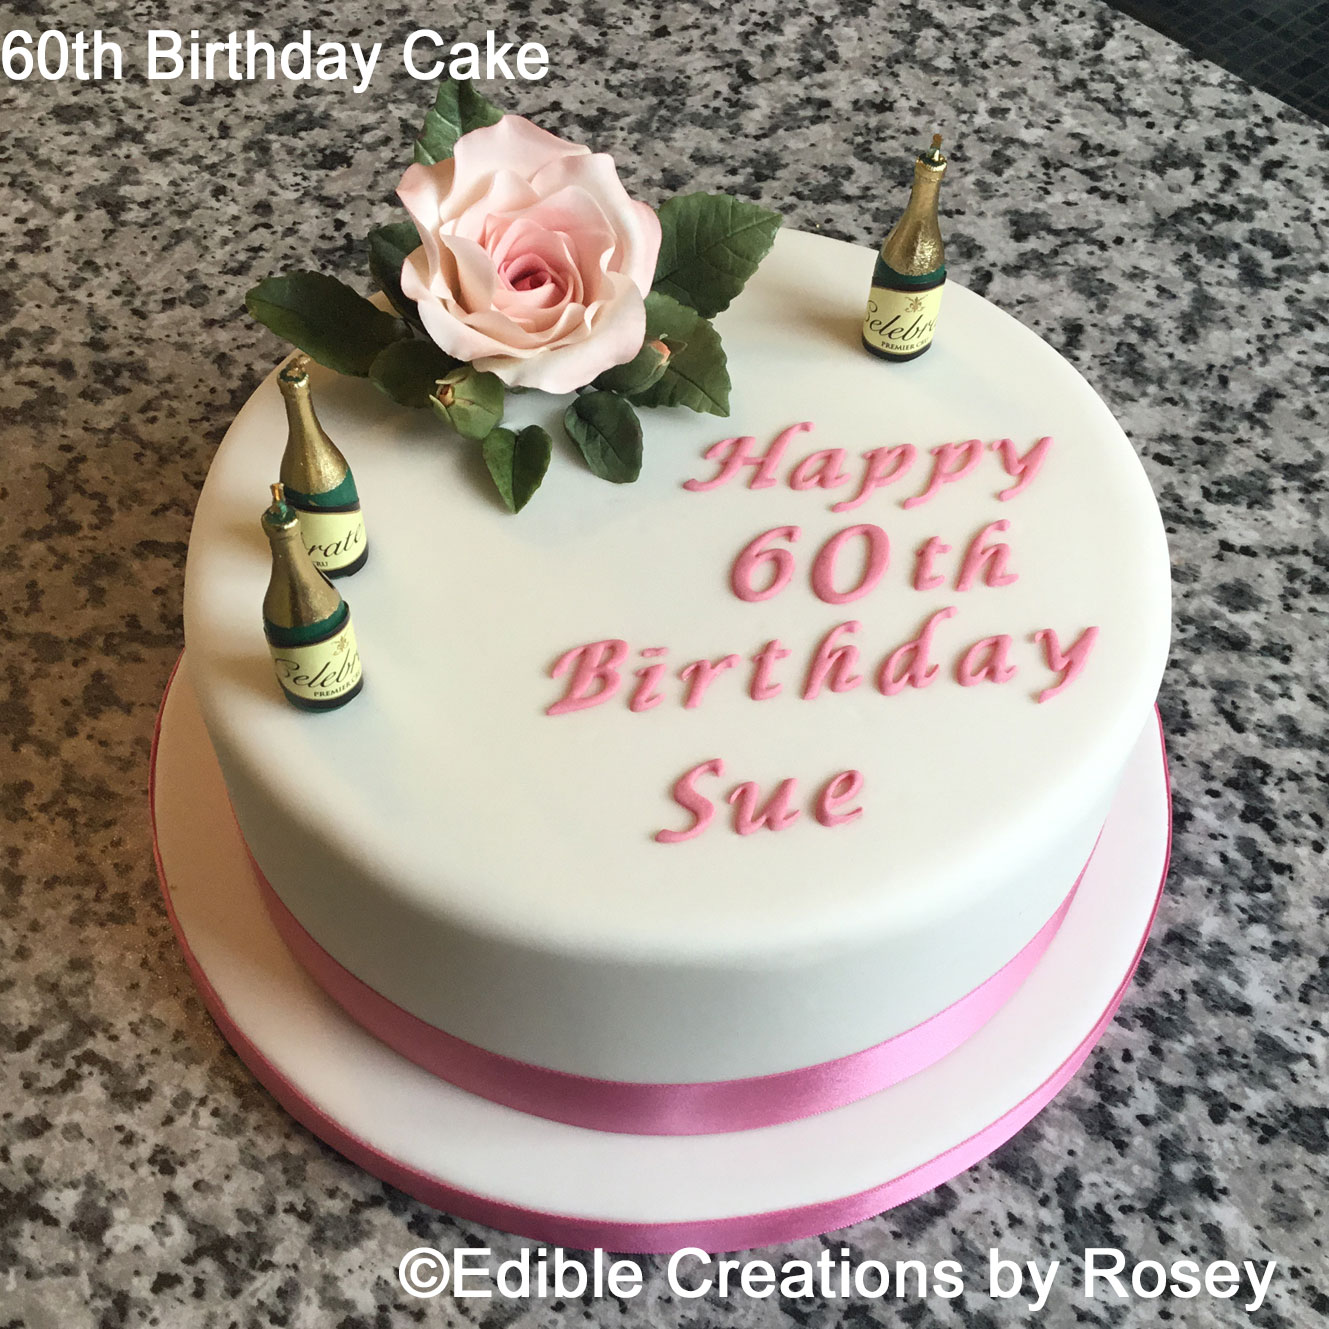 Wondrous Birthday Cakes By Edible Creations By Rosey In South West London Funny Birthday Cards Online Alyptdamsfinfo